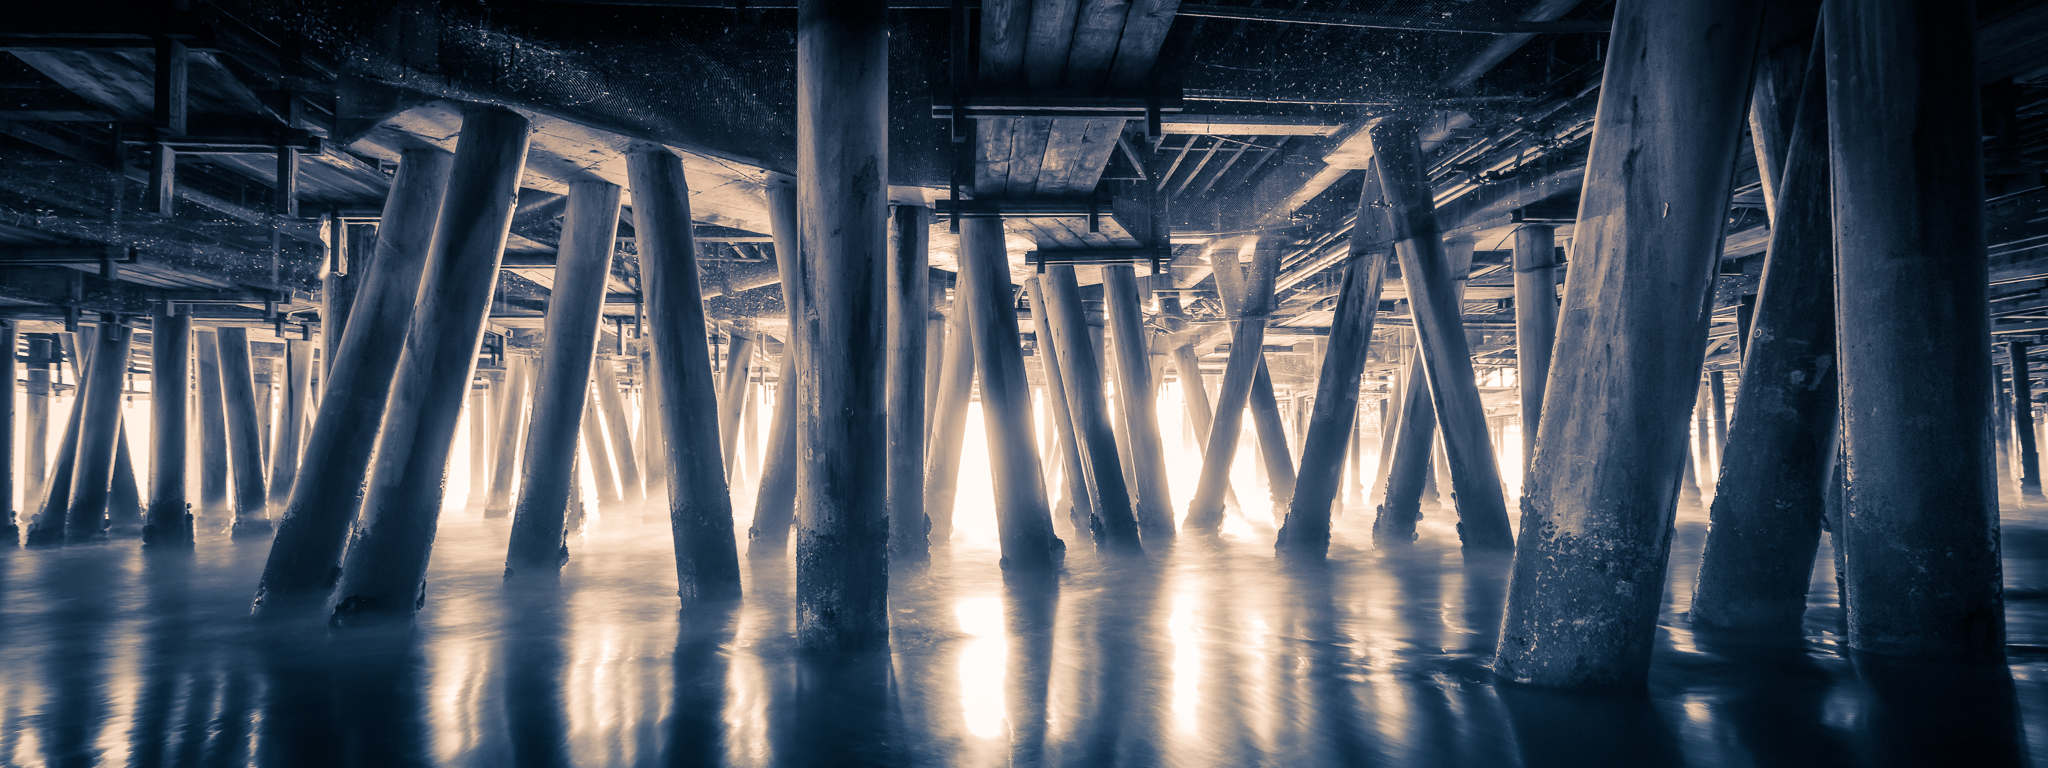 Underneath the Santa Monica pier using a 10-stop ND filter.